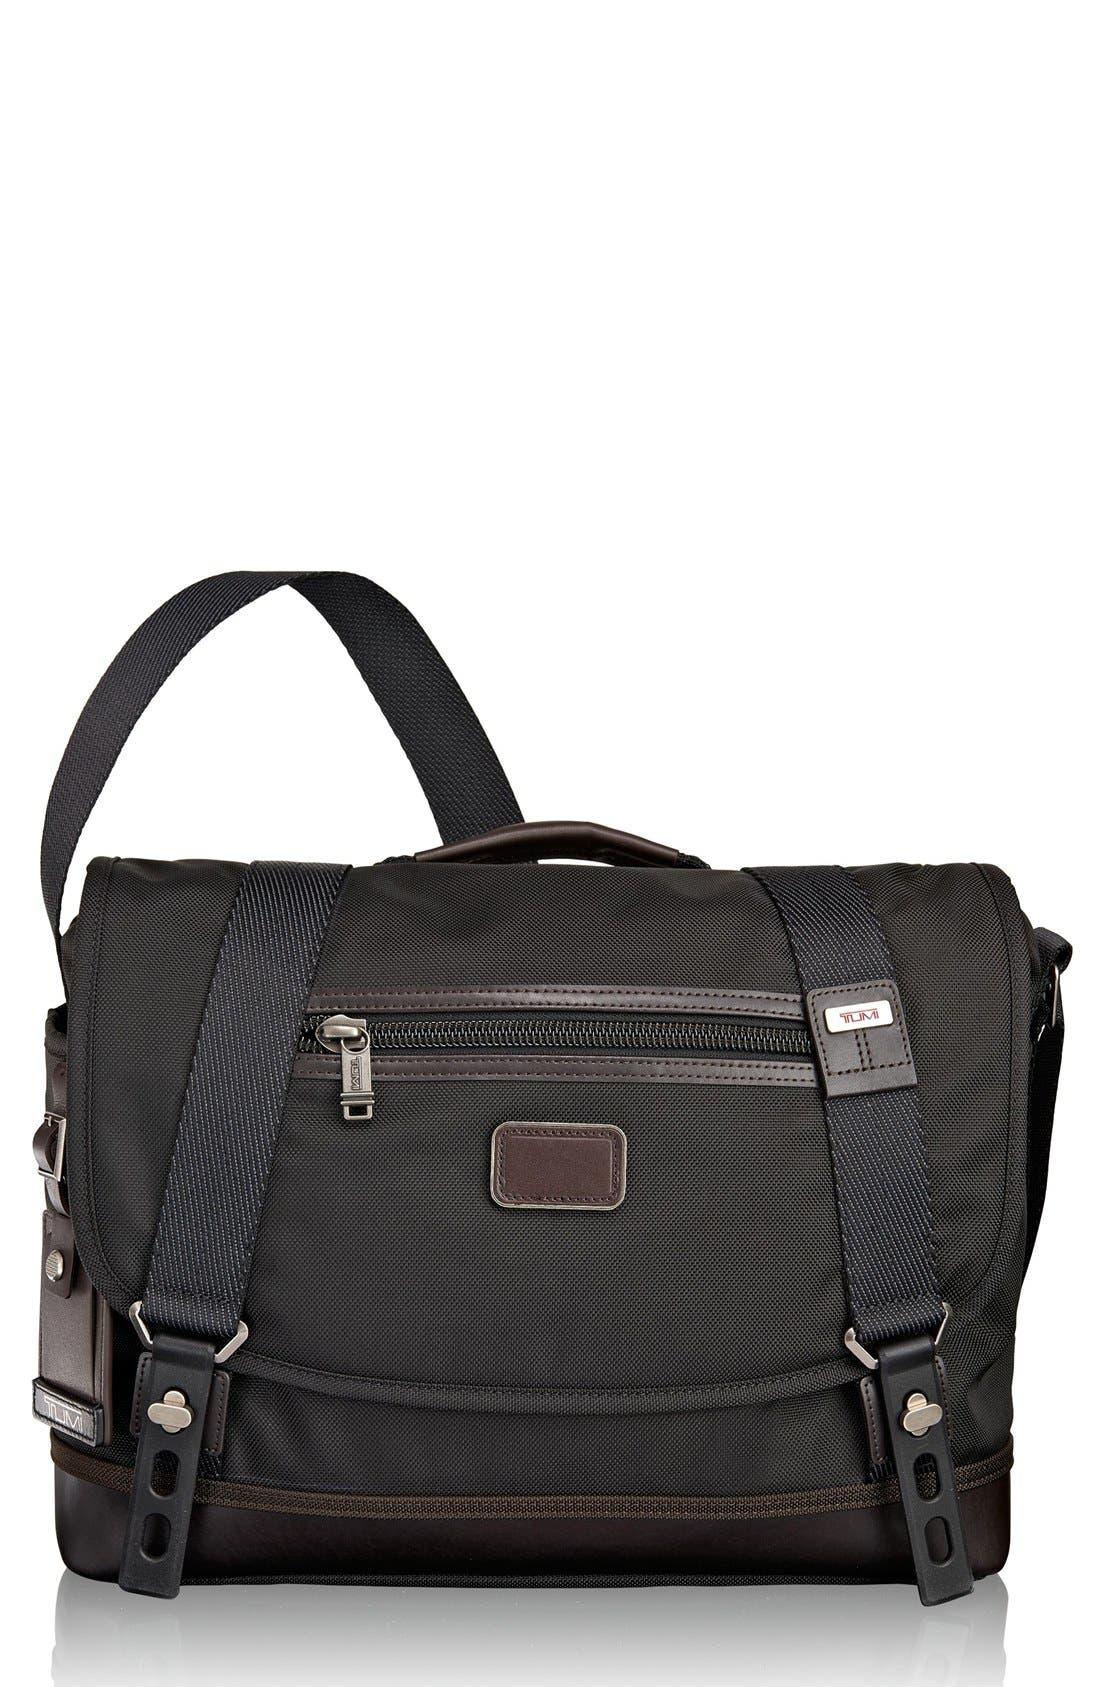 TUMI Alpha Bravo - Foster Messenger Bag